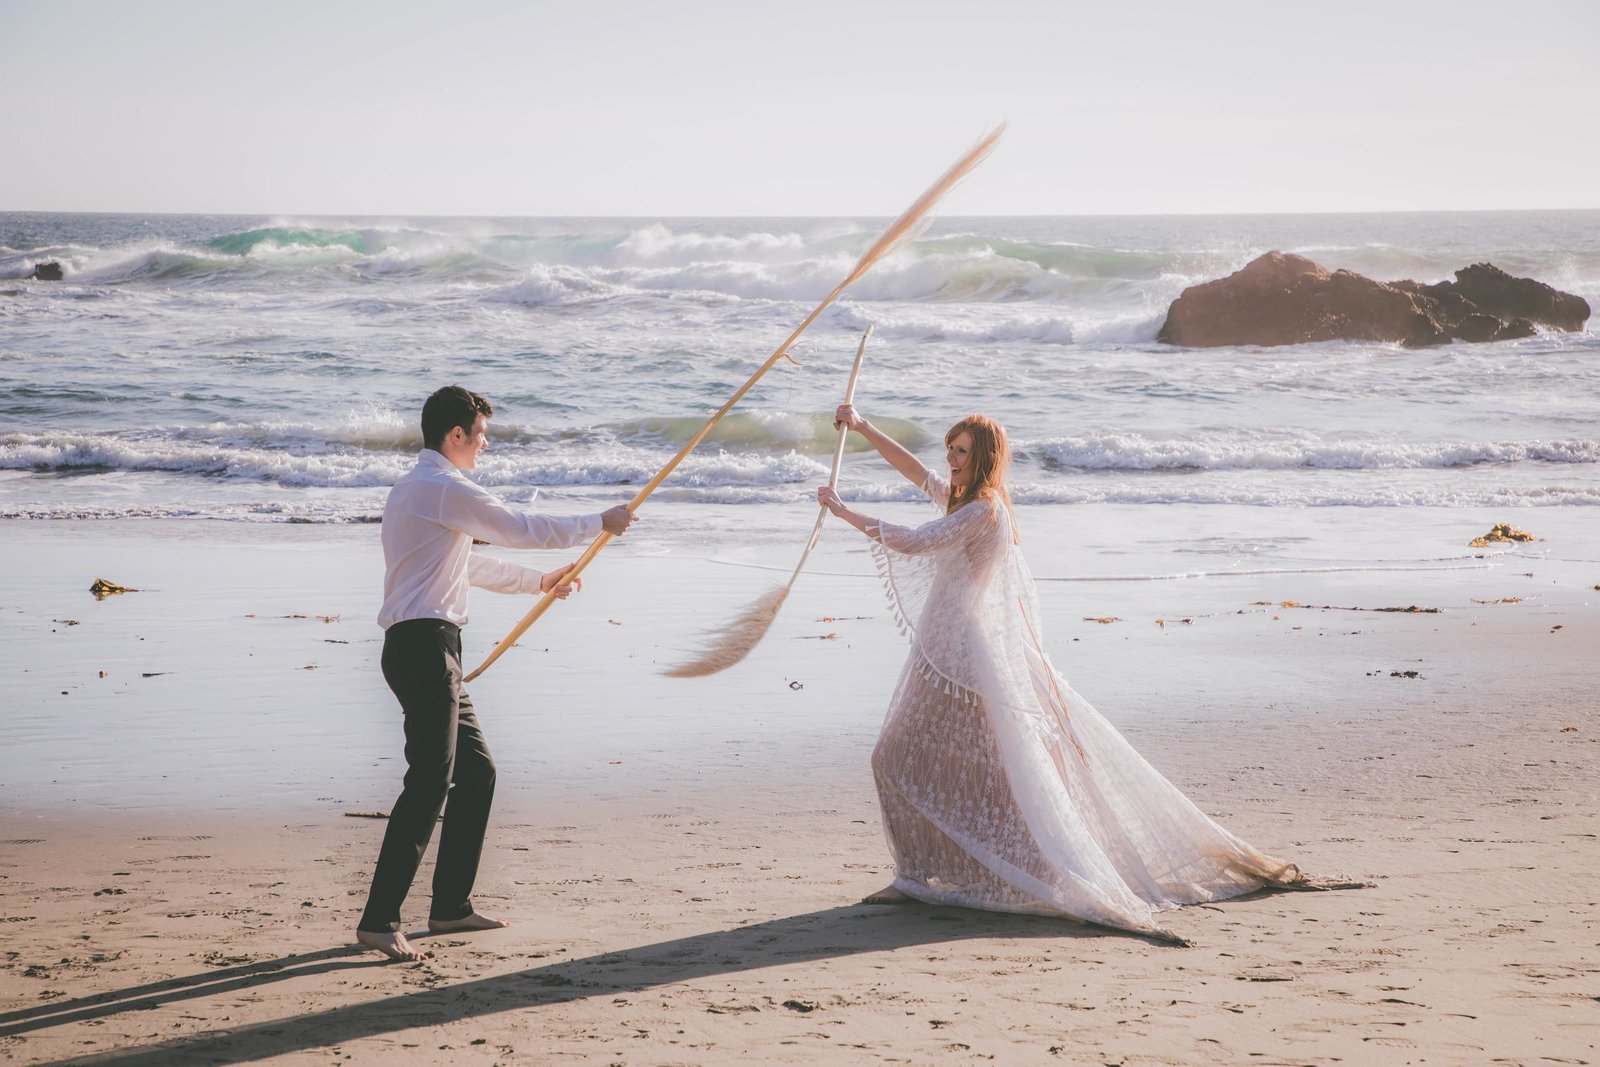 A bride and groom play fight each other using pampas grass on a beach.